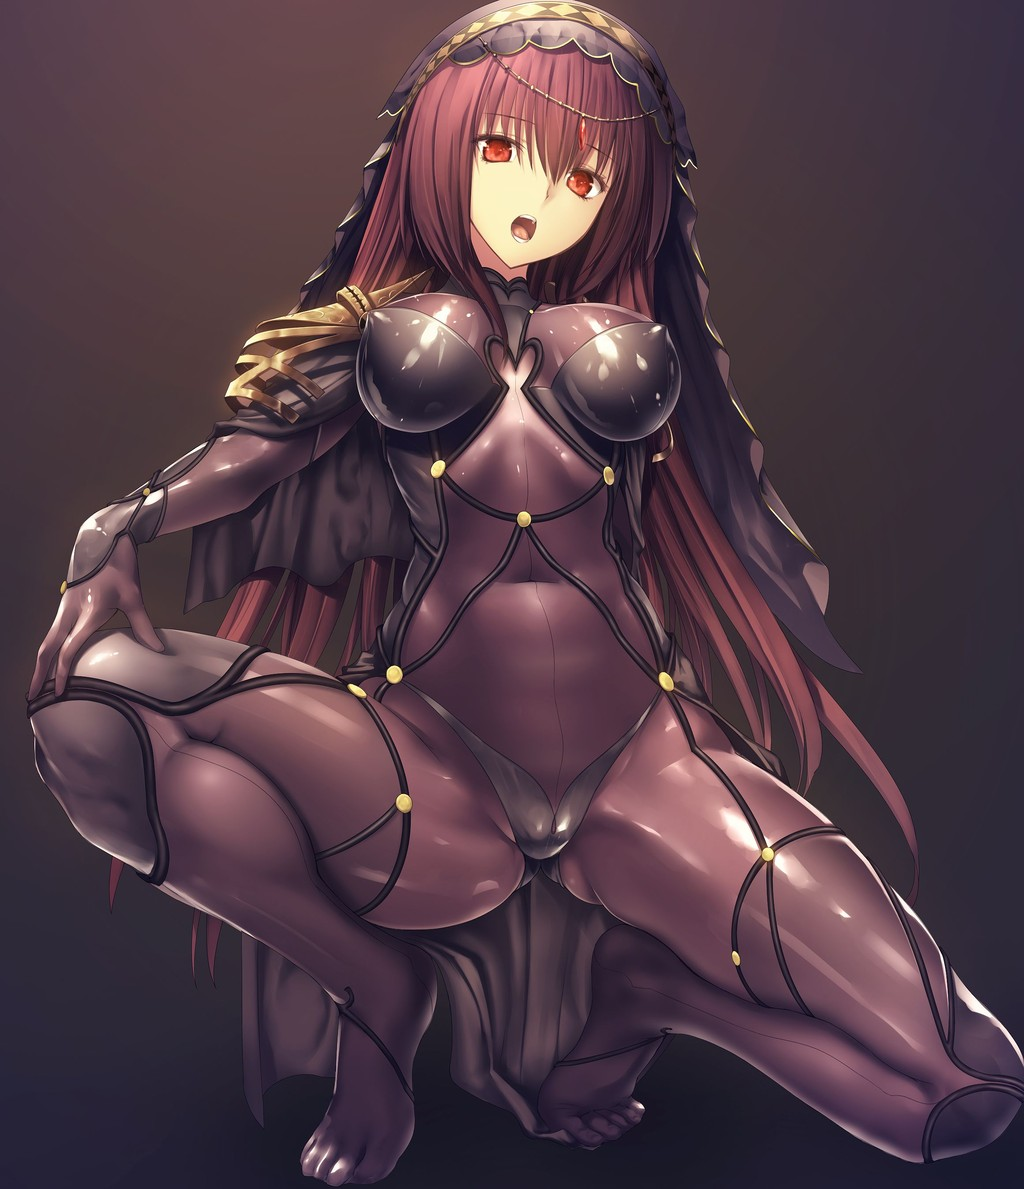 scathach_(fategrand_order)056